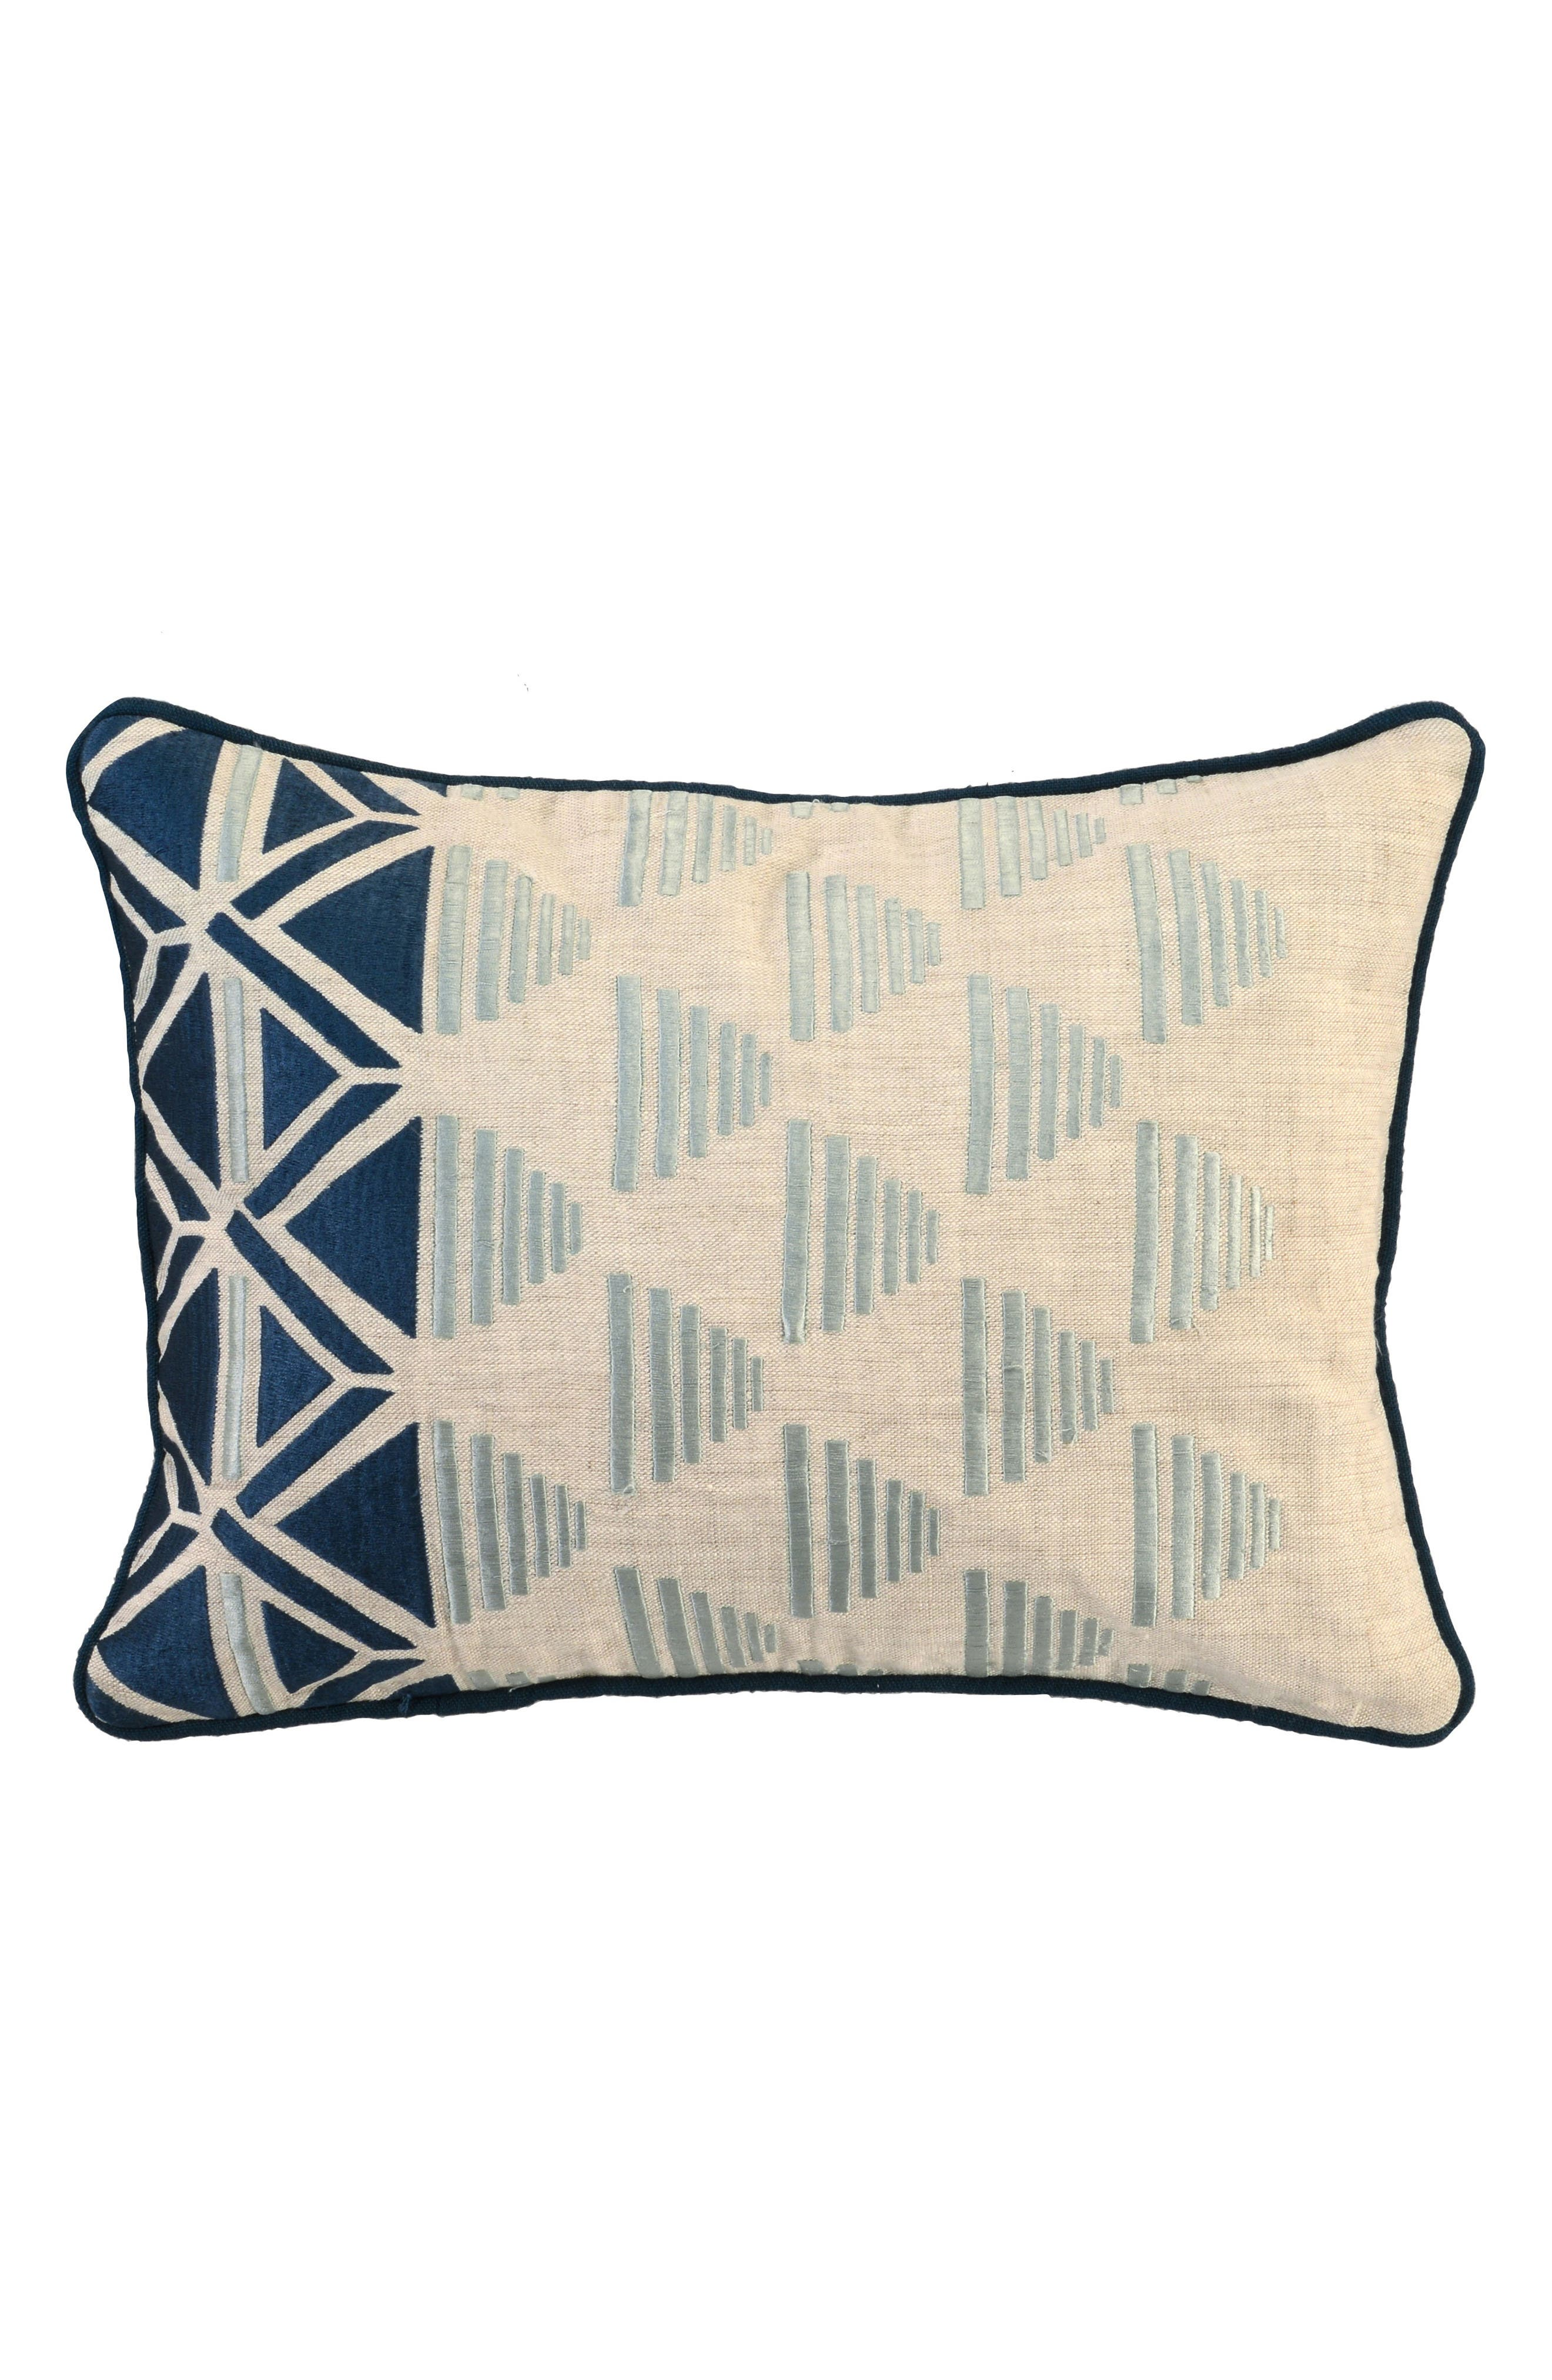 Embroidered Pillow,                         Main,                         color, Tidal